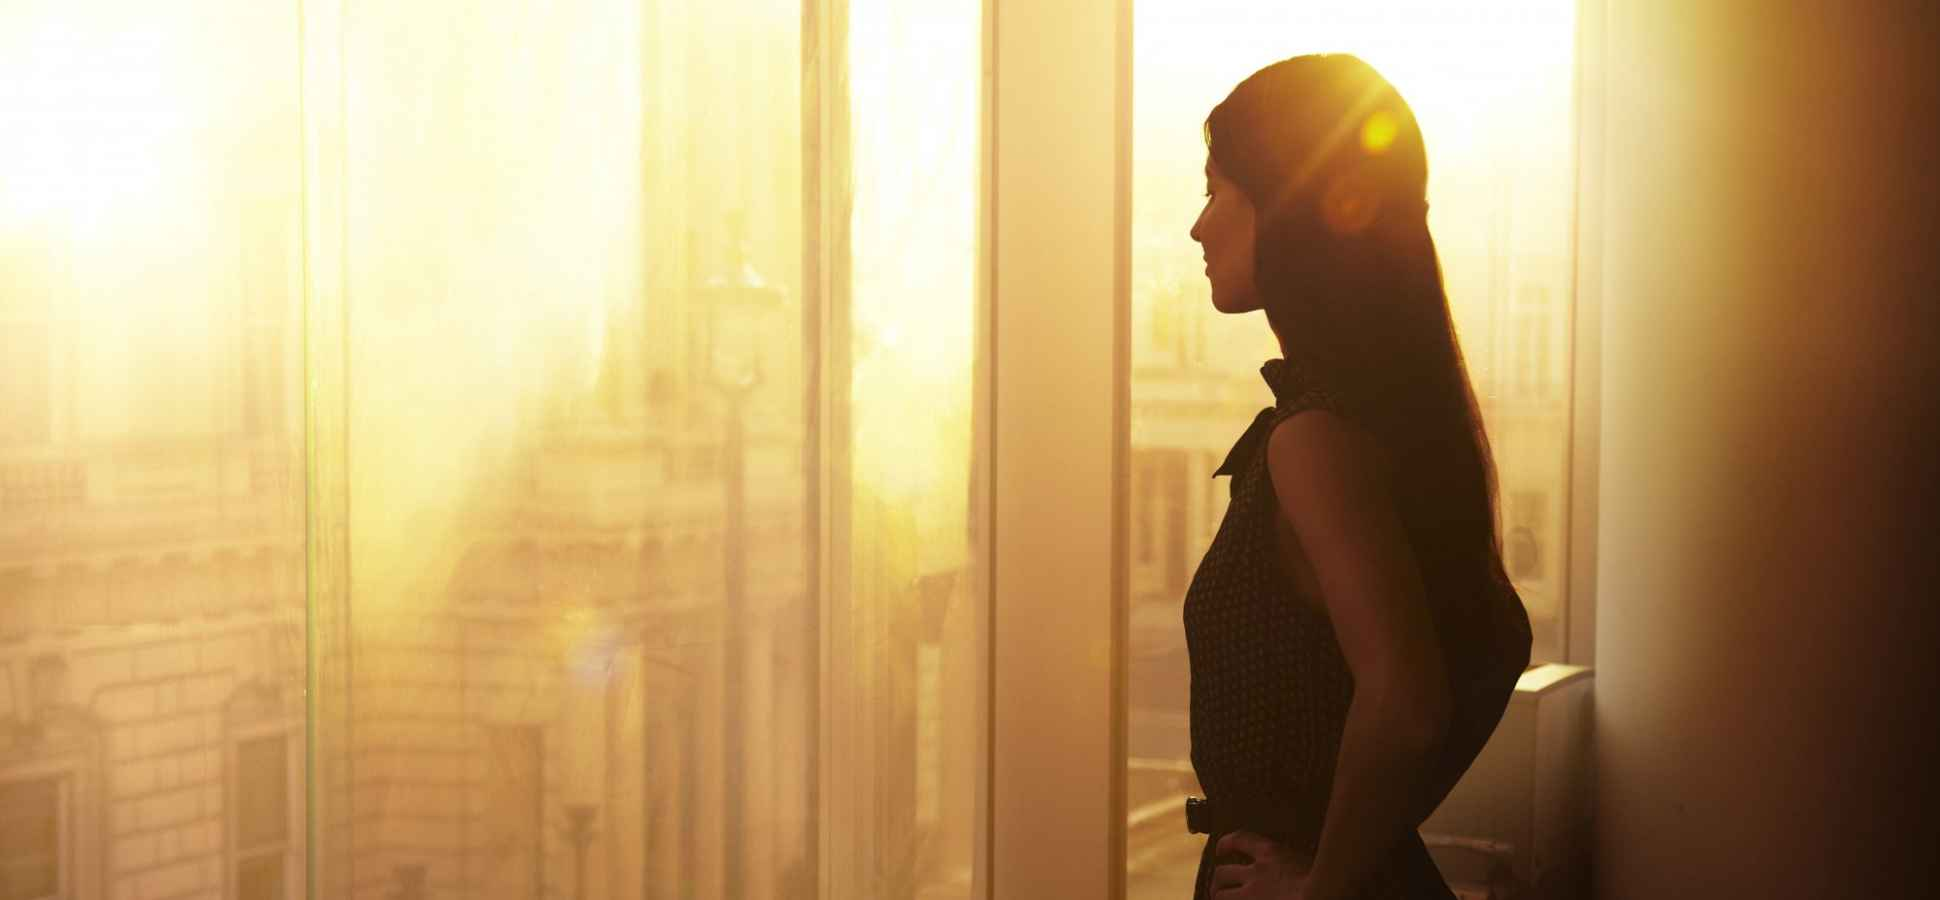 16 Things to Do by December 31 to Set Yourself Up for Success in 2016